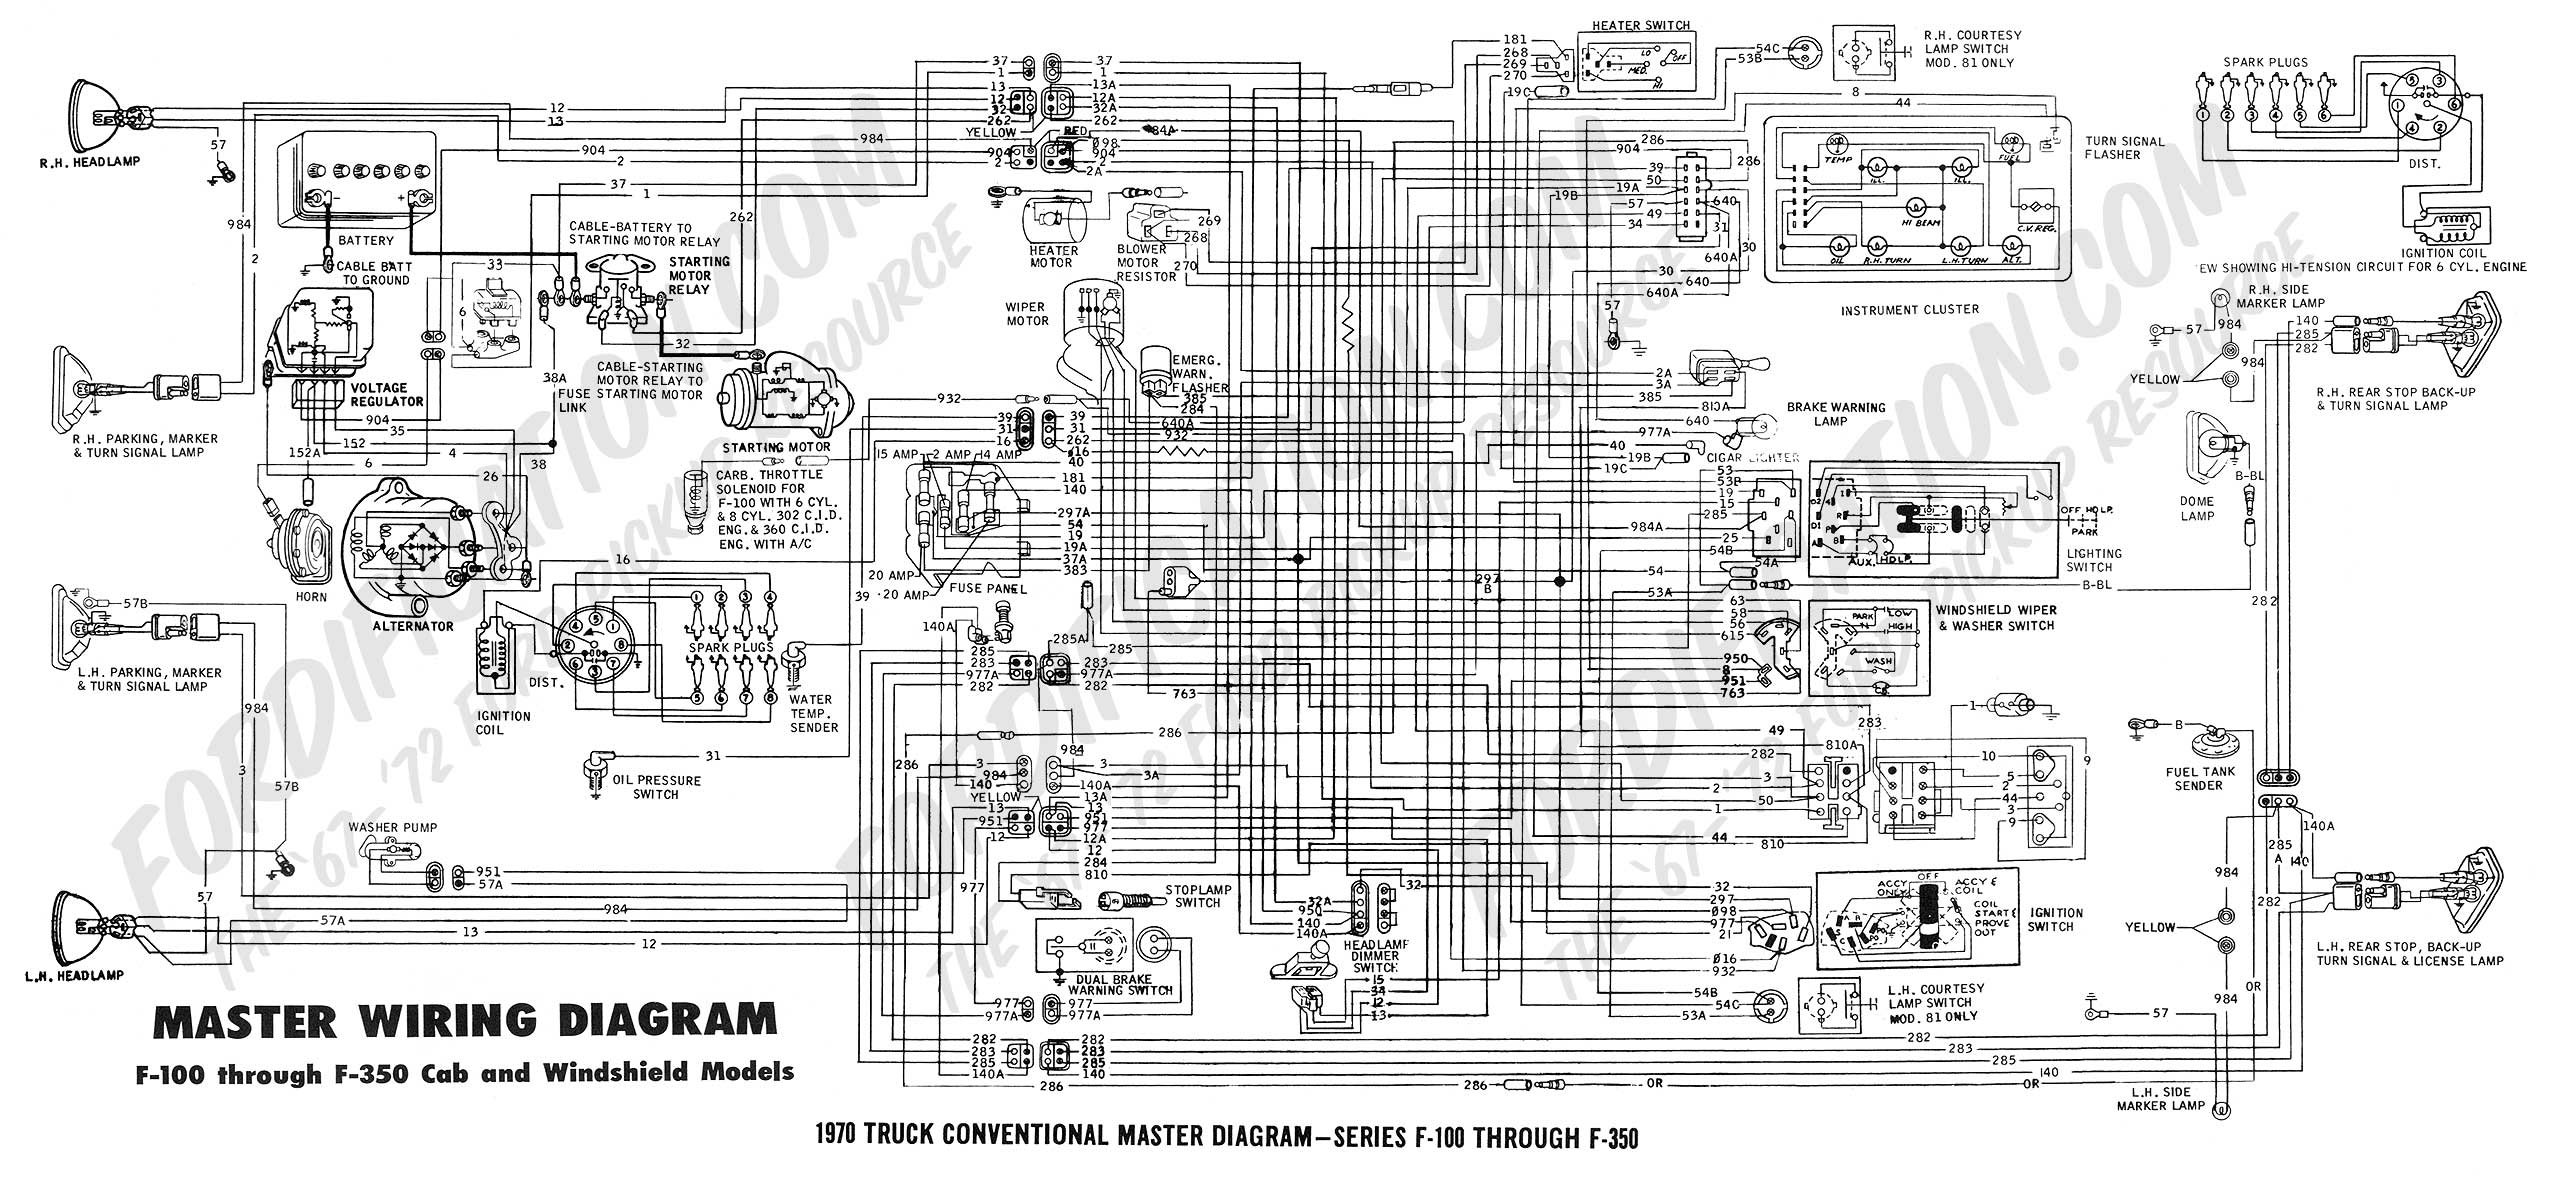 F250 Wiring Diagram - Wiring Diagram Schematic - Ford F250 Wiring Diagram For Trailer Lights